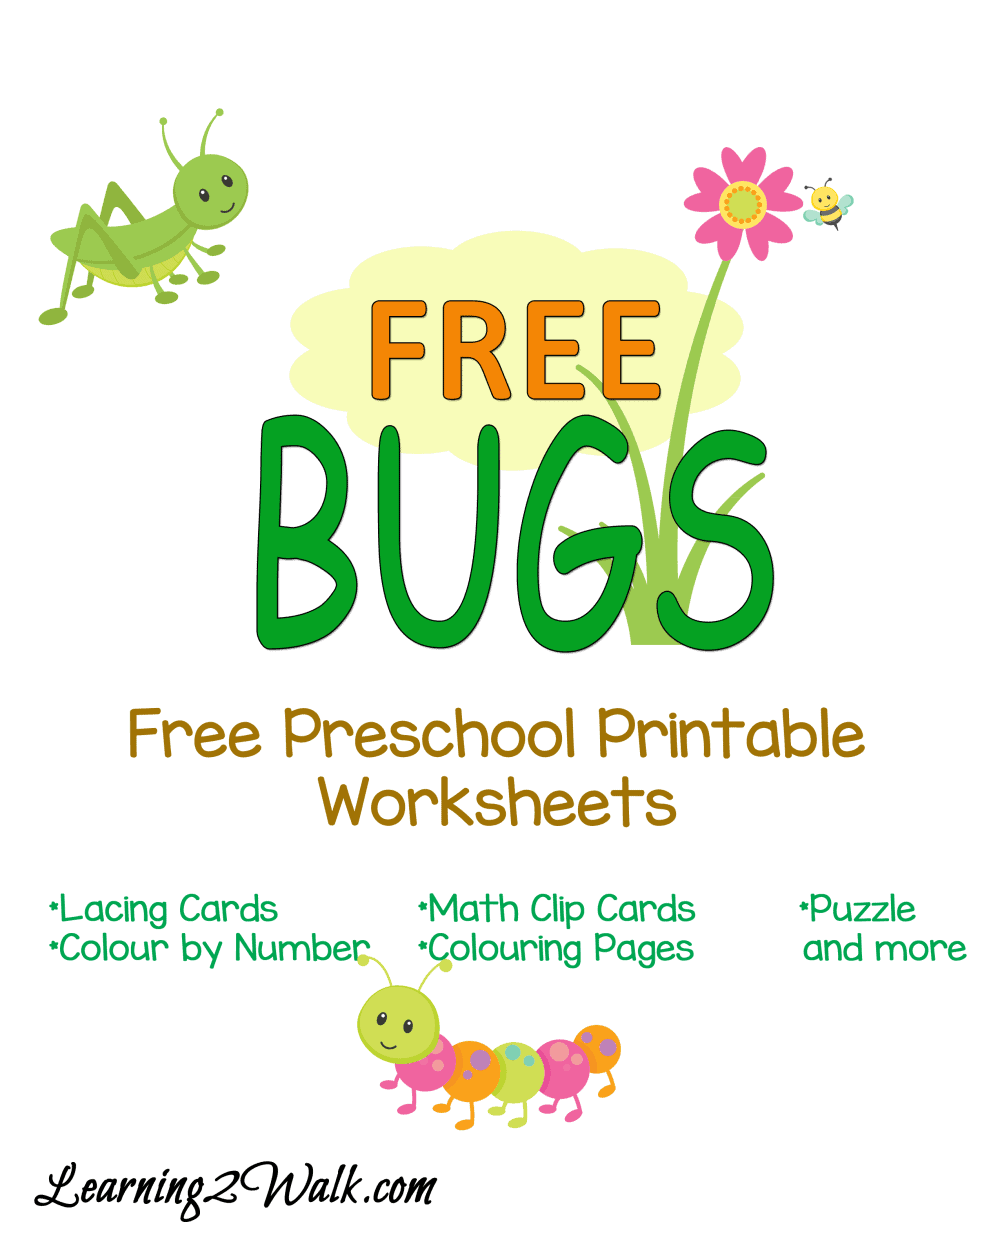 Bring on the bugs (but keep them at a safe distance of course). If you are looking for a fun and free bugs preschool printable worksheets try these.